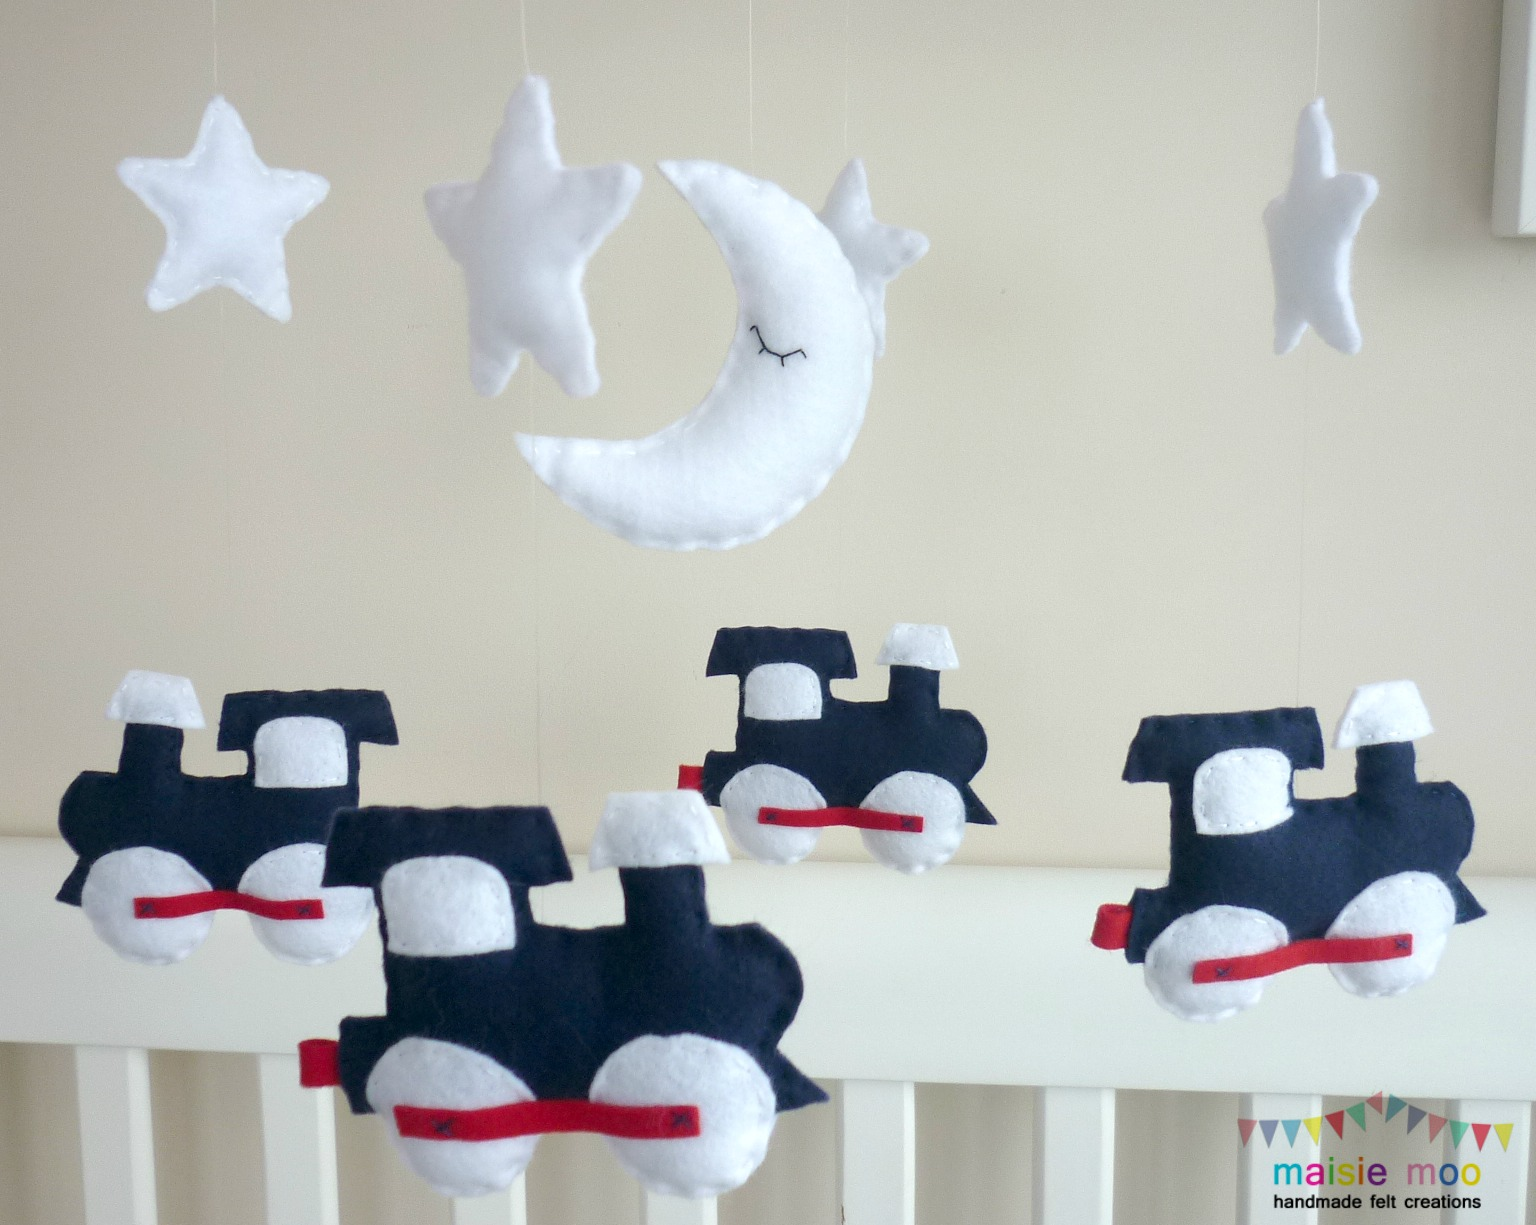 dream train  baby boy mobile in navy red and white  felt - dream train  baby boy mobile in navy red and white